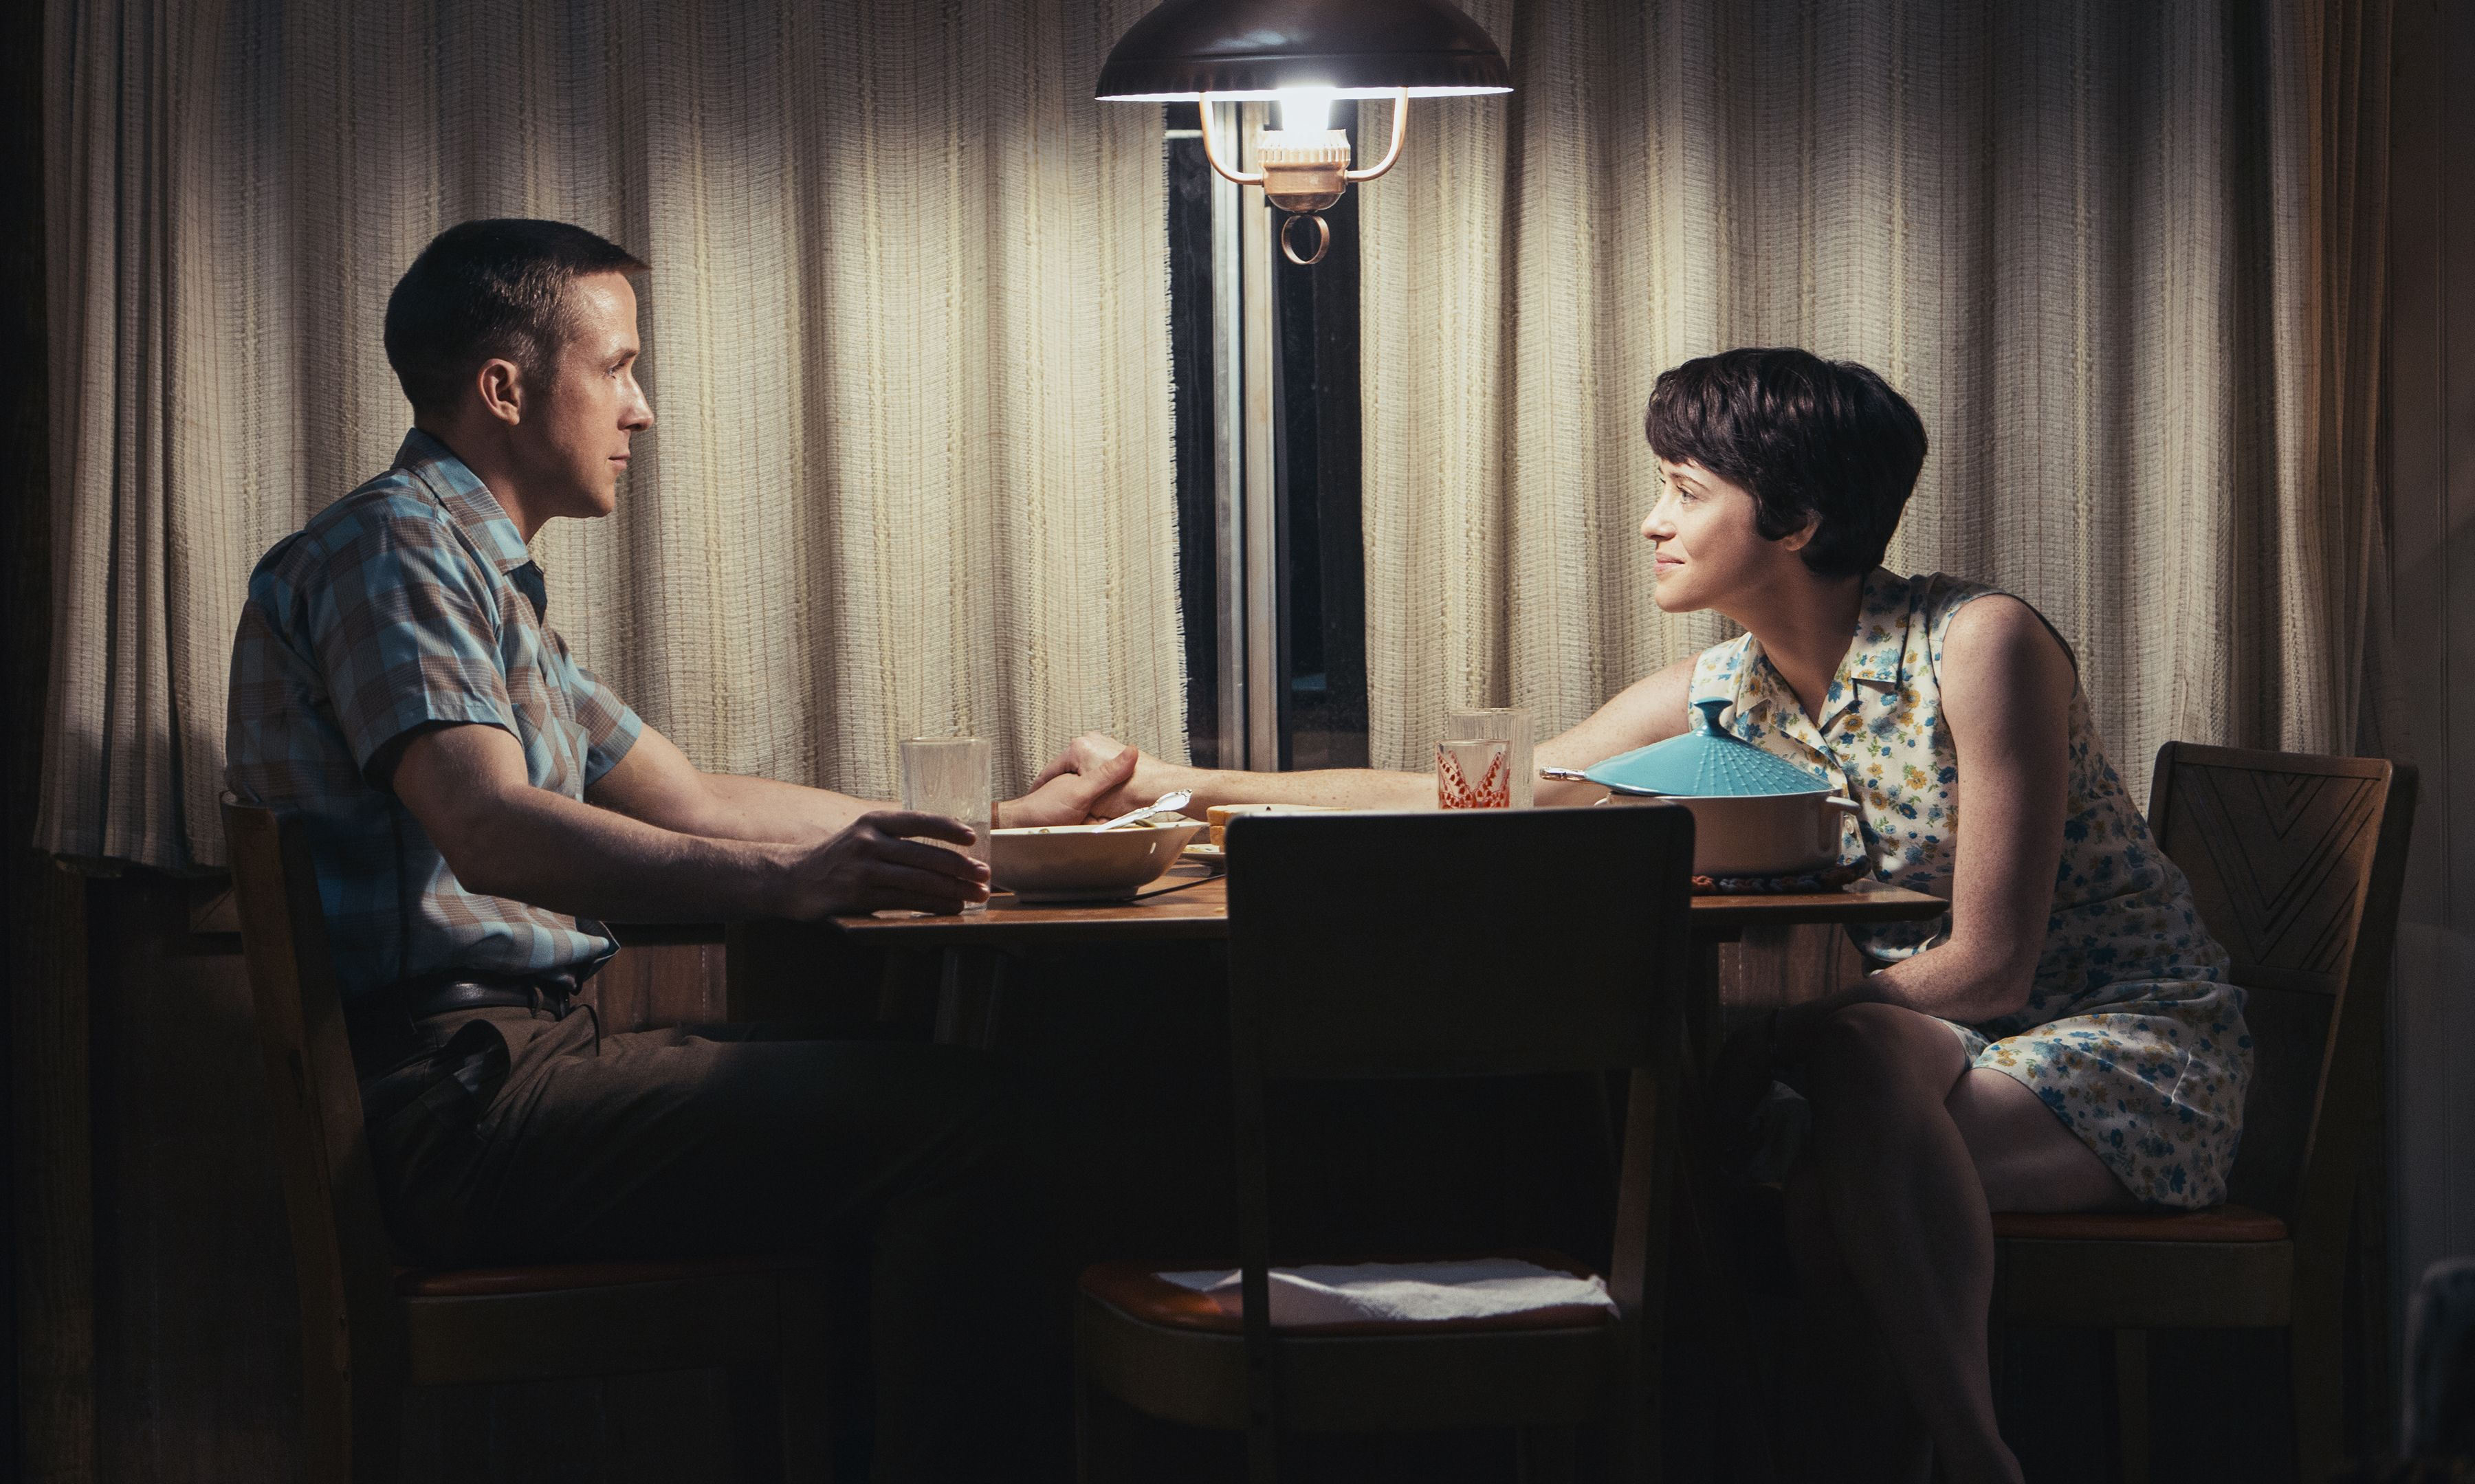 Editorial use only. No book cover usage.Mandatory Credit: Photo by Daniel McFadden/Universal/Kobal/REX/Shutterstock (9927631k)Ryan Gosling as Neil Armstrong, Claire Foy as Janet Armstrong'First Man' Film - 2018A look at the life of the astronaut, Neil Armstrong, and the legendary space mission that led him to become the first man to walk on the Moon on July 20, 1969.